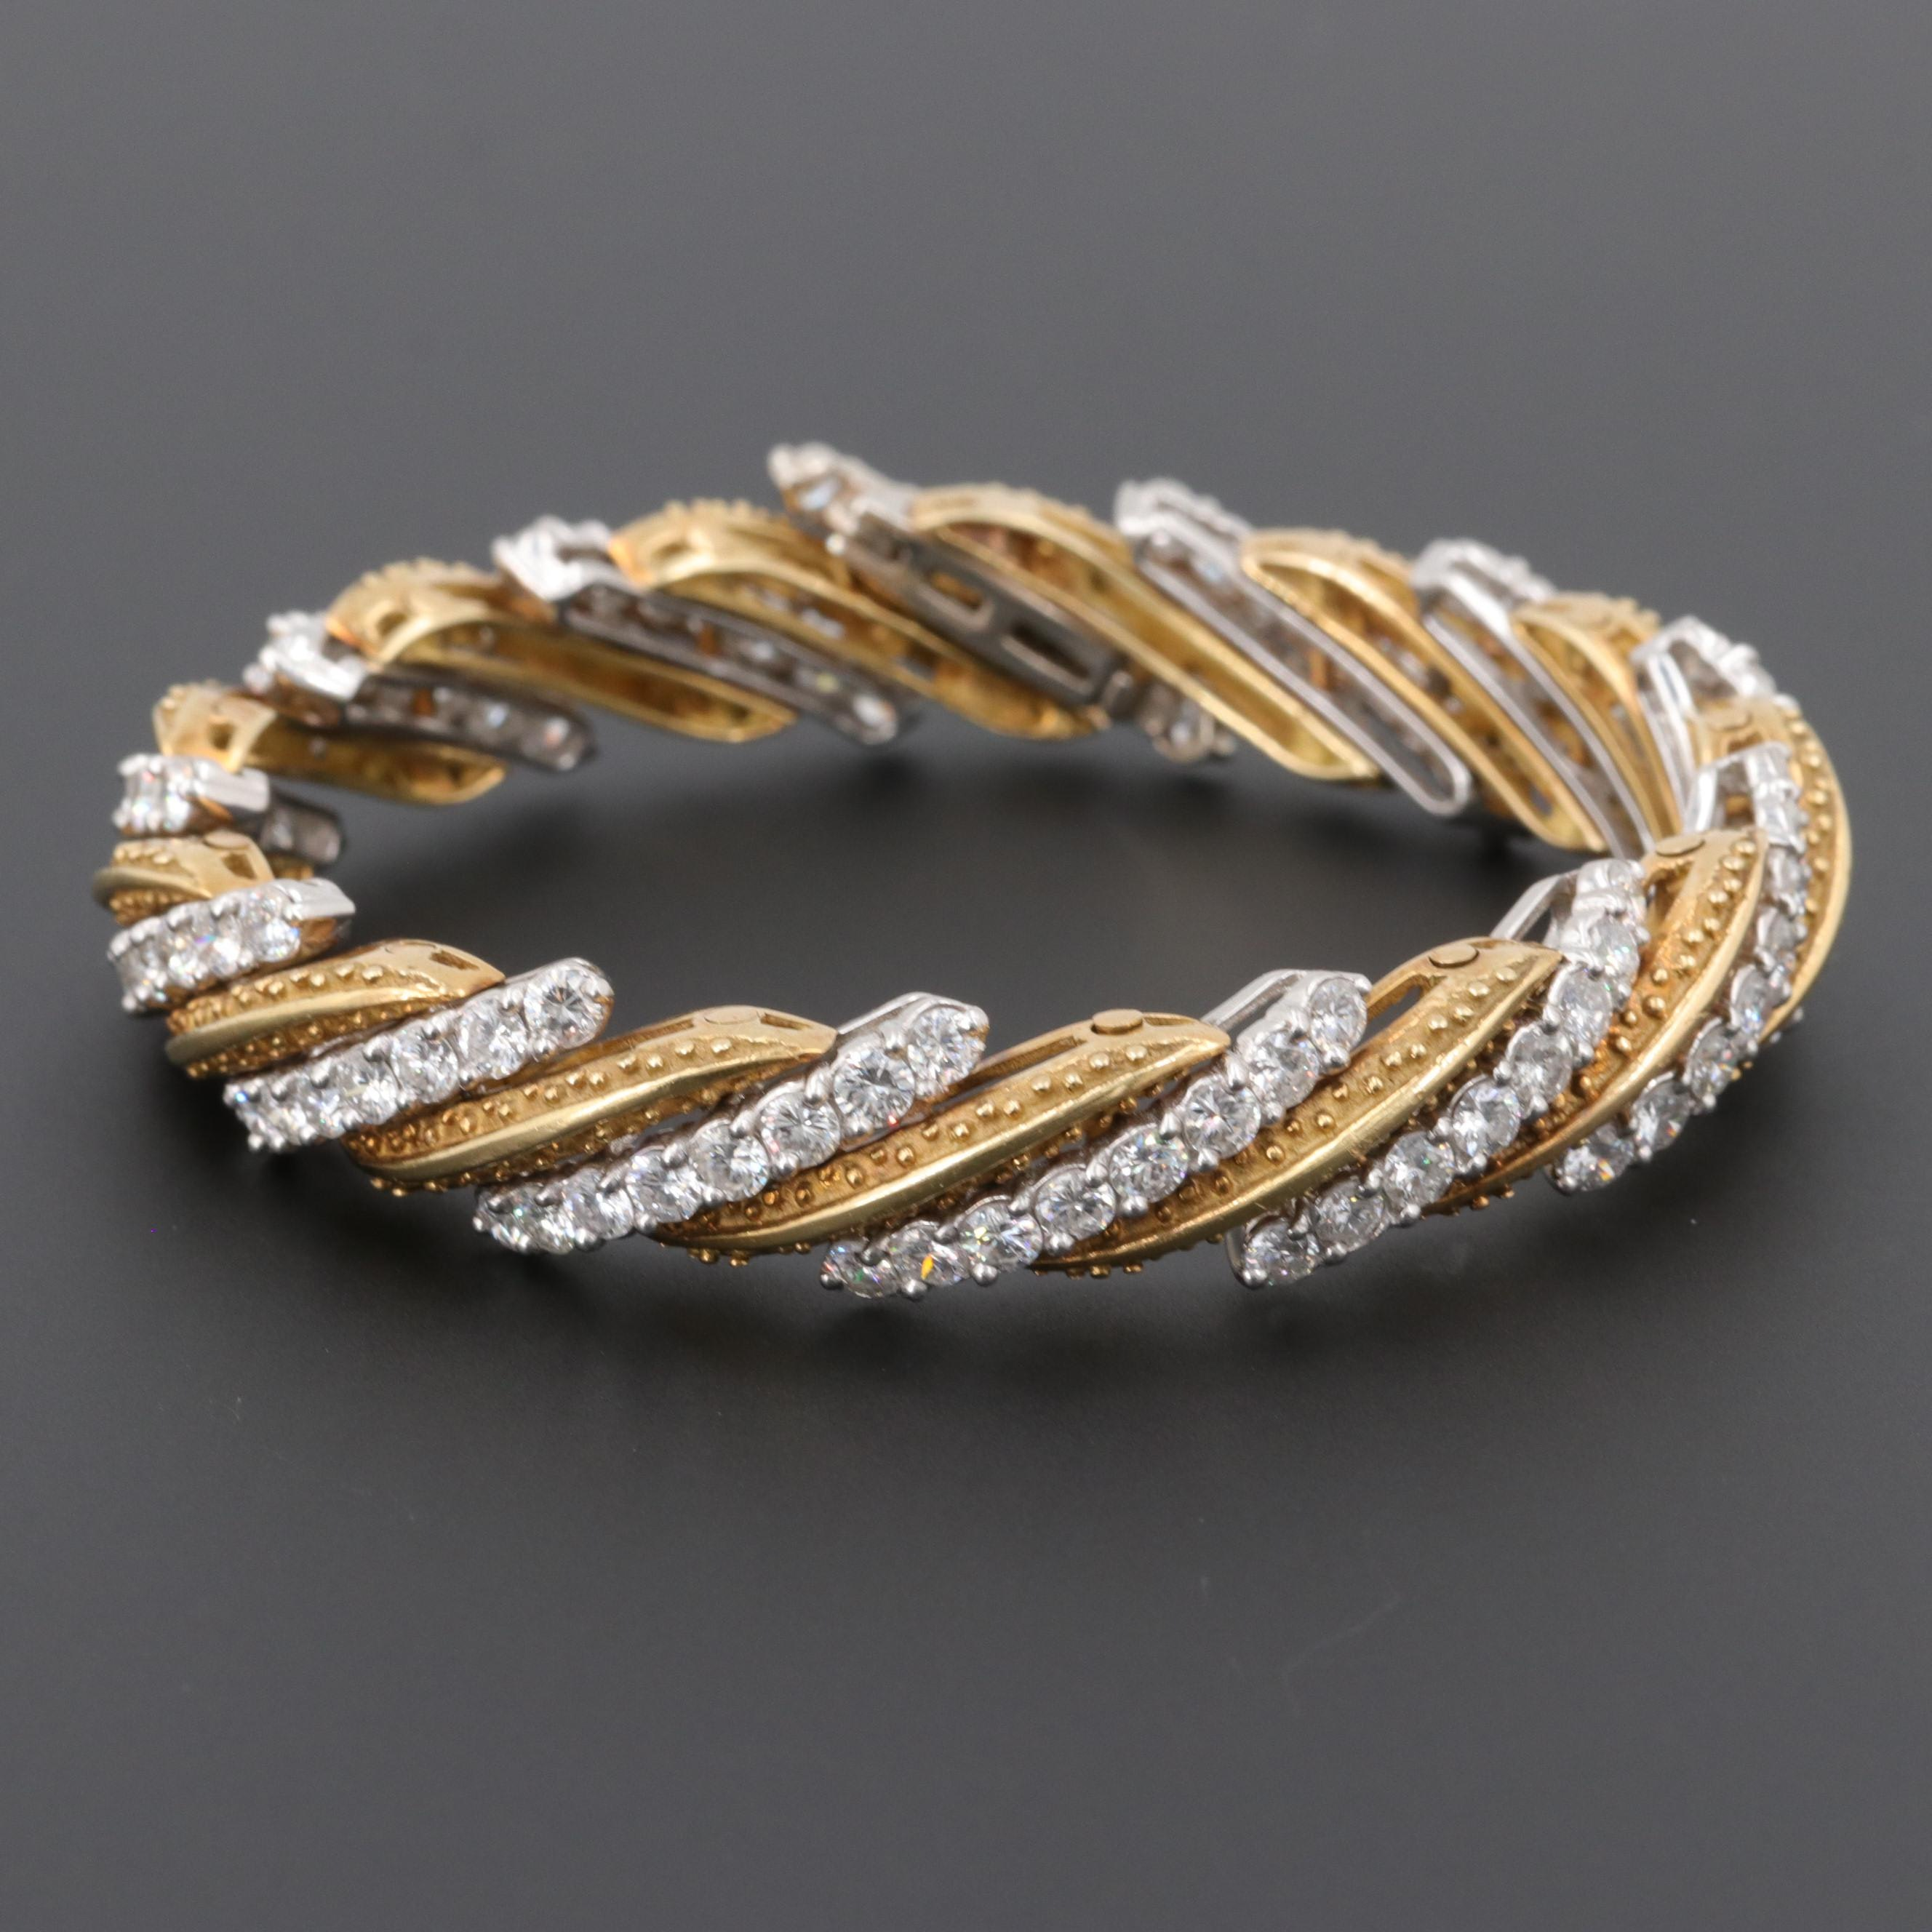 18K Yellow Gold and Platinum 8.52 CTW Diamond Bracelet